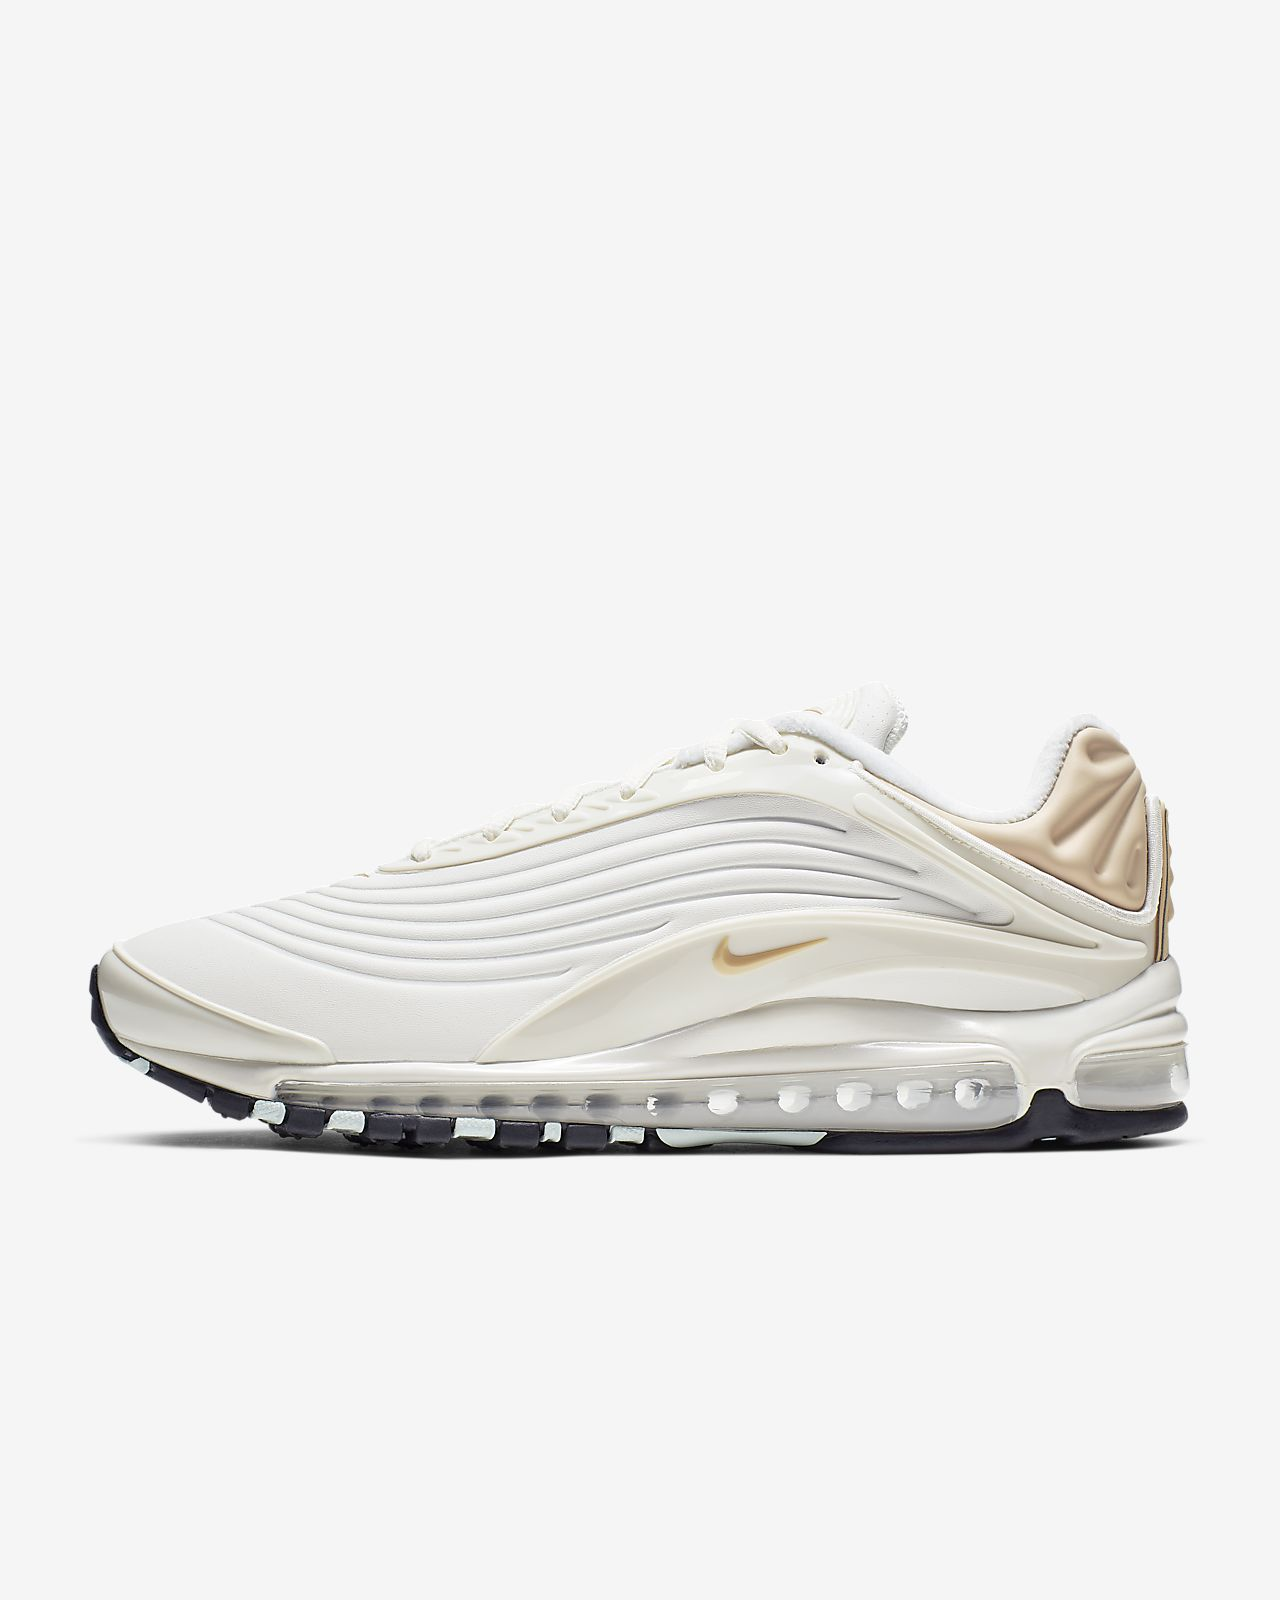 53209bf608ff Nike Air Max Deluxe SE Men s Shoe. Nike.com GB